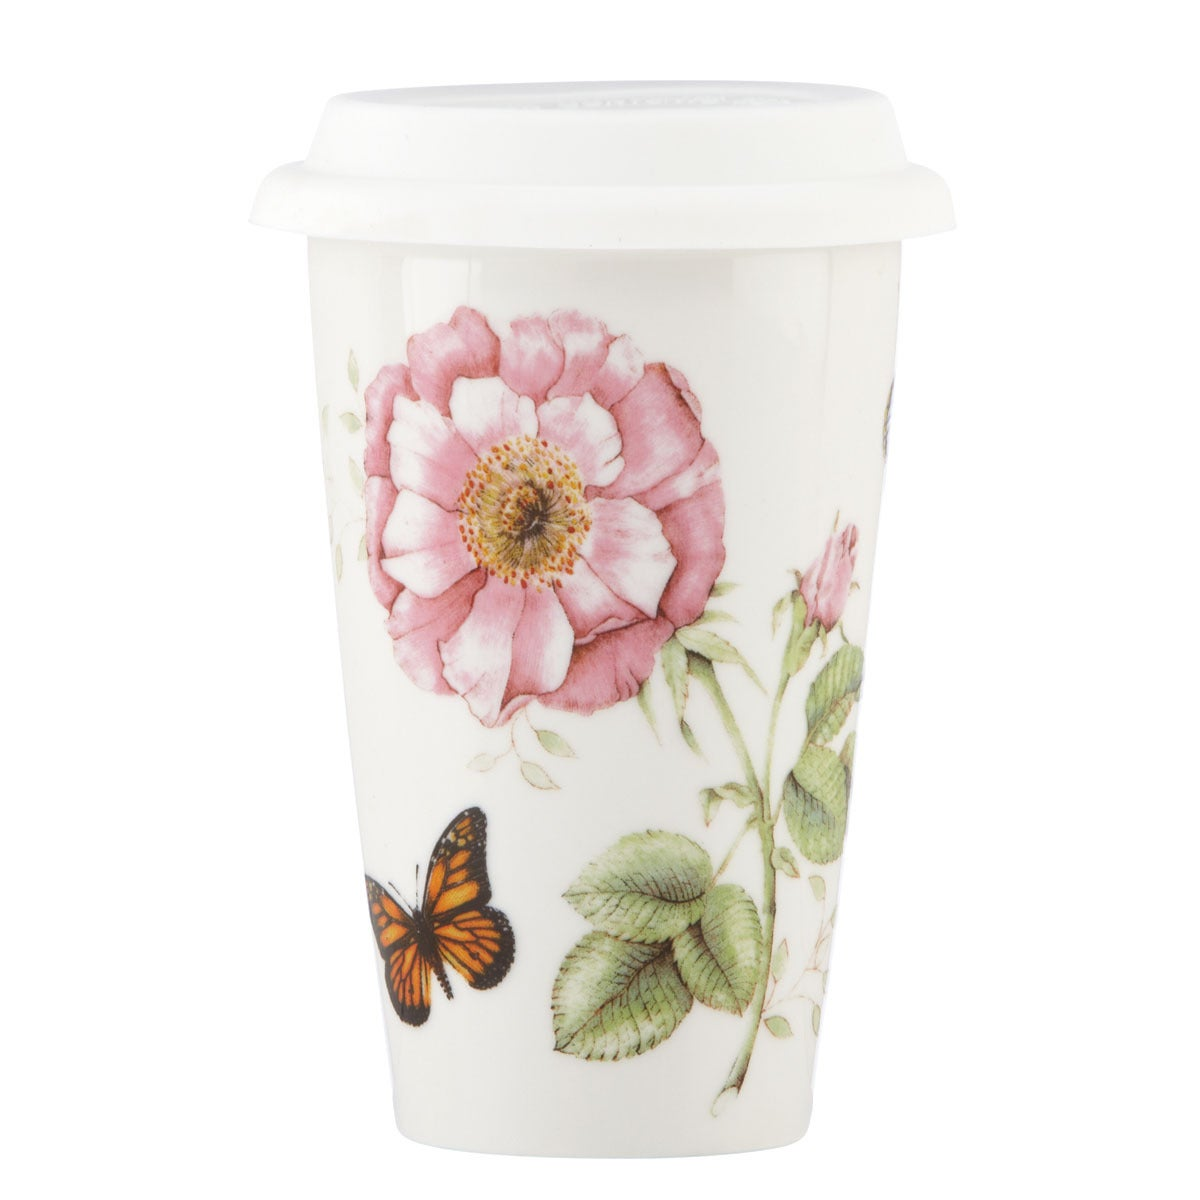 Lenox Butterfly Meadow Travel Mug, White (Ceramic, Garden)